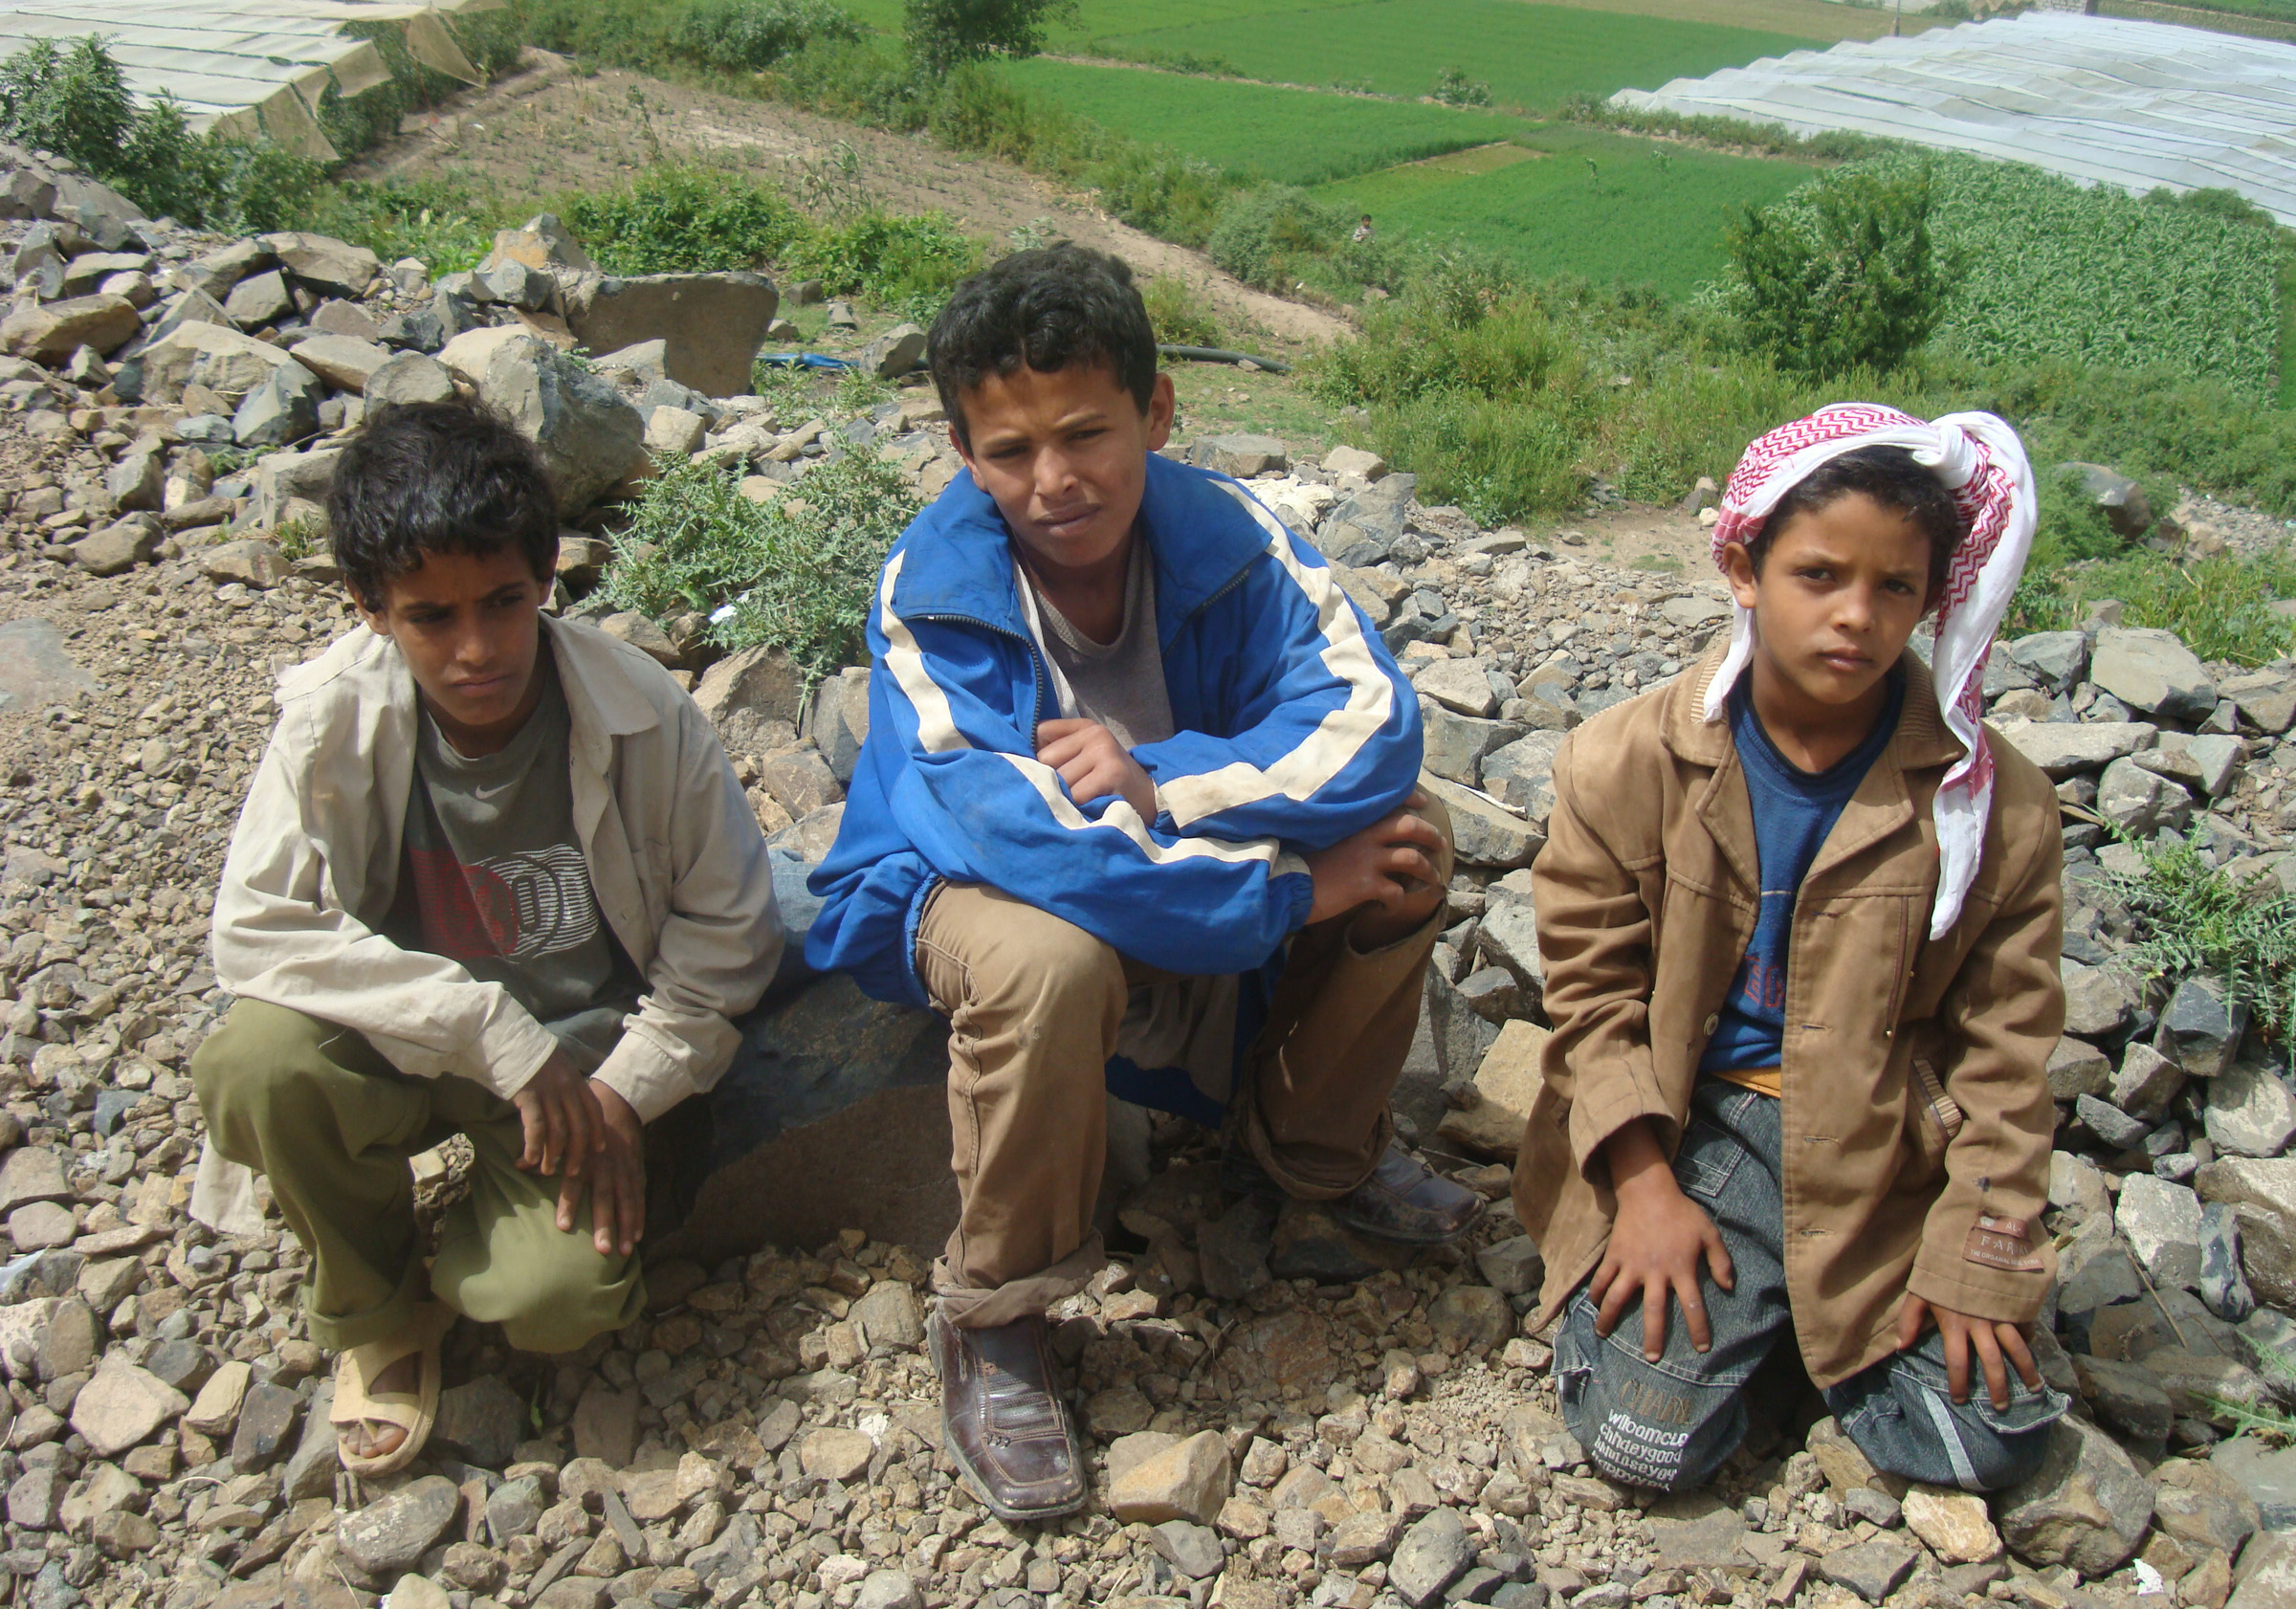 Children in Dammaj village, northern Yemen